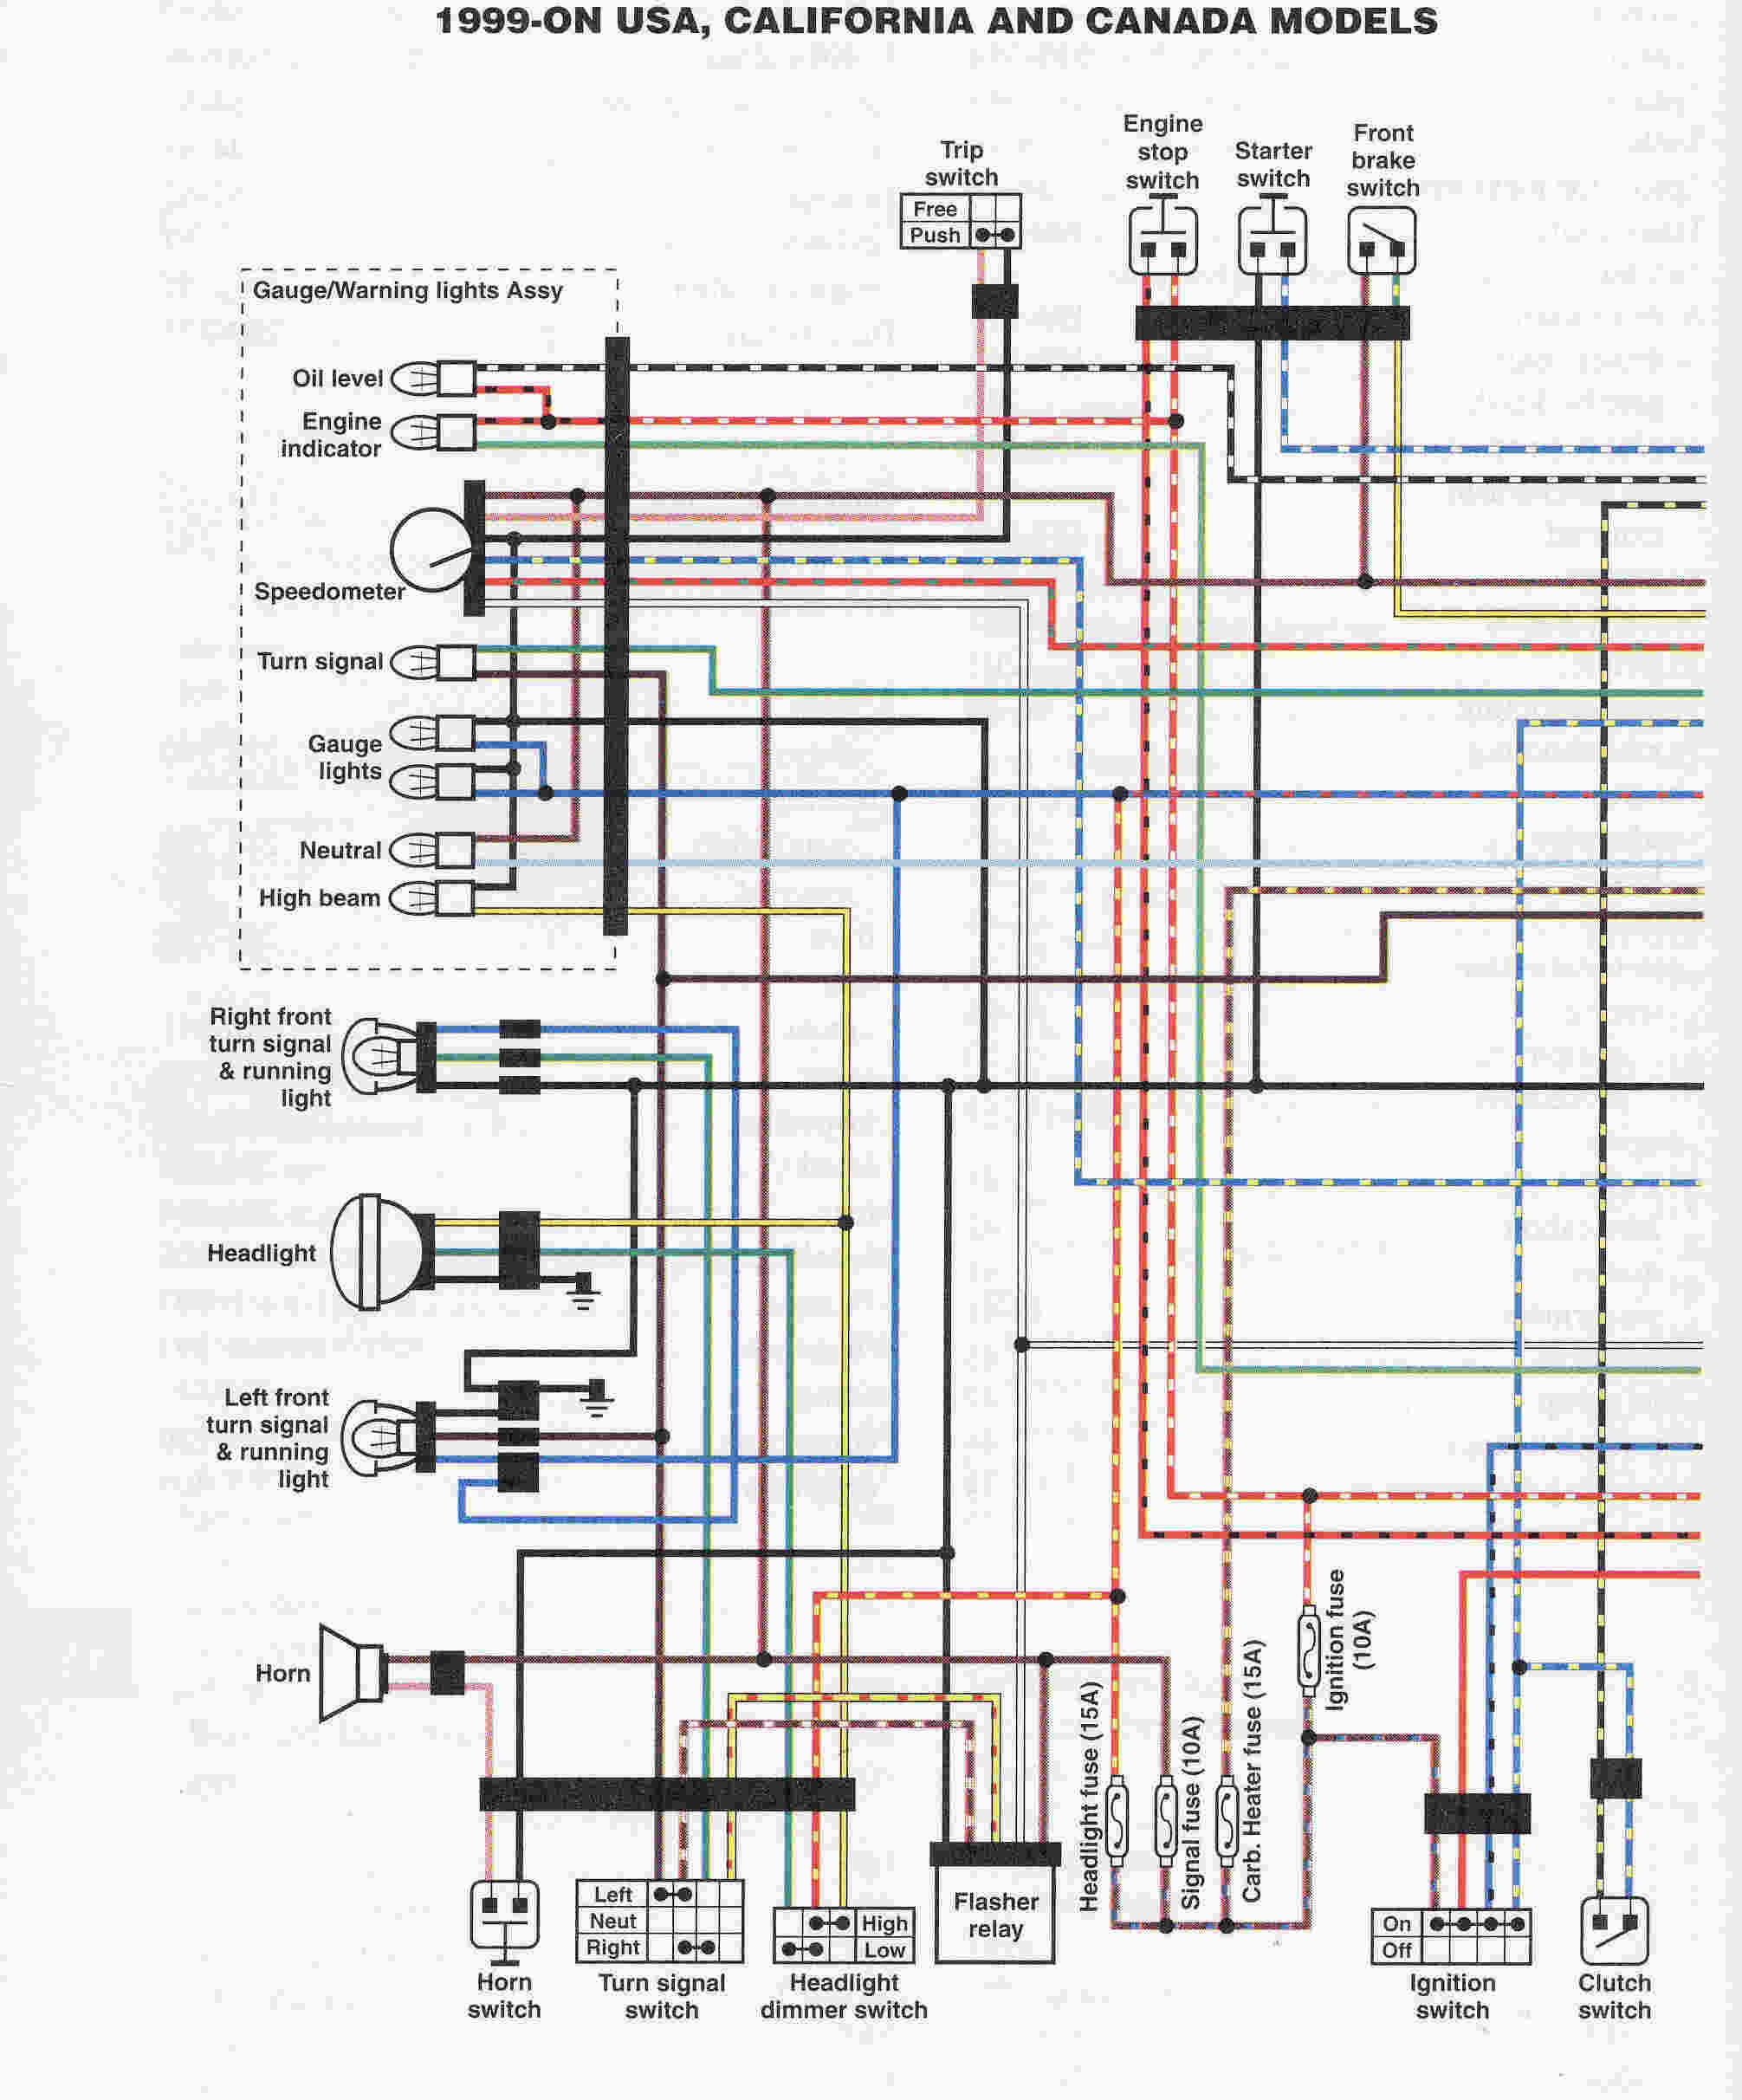 hight resolution of wiring diagram 2006 yamaha yzf r1 cheap yamaha r1 wiring 2001 yamaha r6 electrical diagram 2001 yamaha r6 wiring diagram